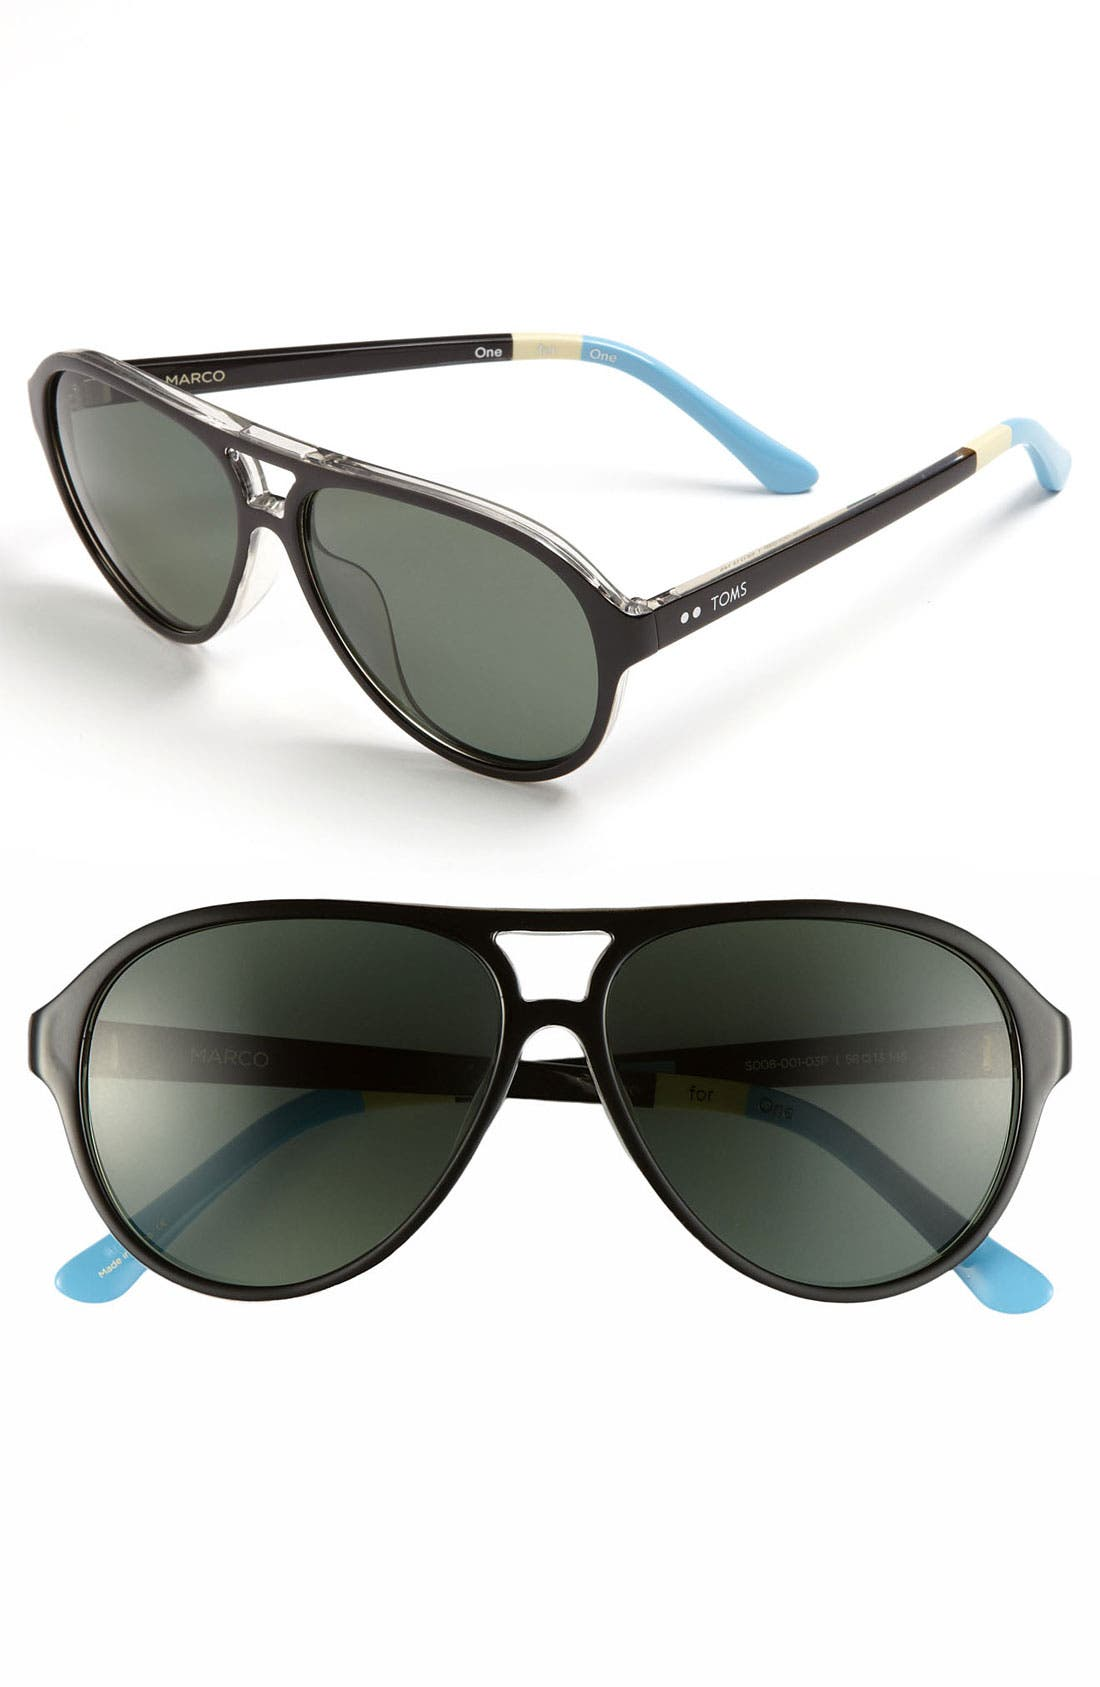 Alternate Image 1 Selected - TOMS 'Marco - Classic 104' 58mm Polarized Aviator Sunglasses